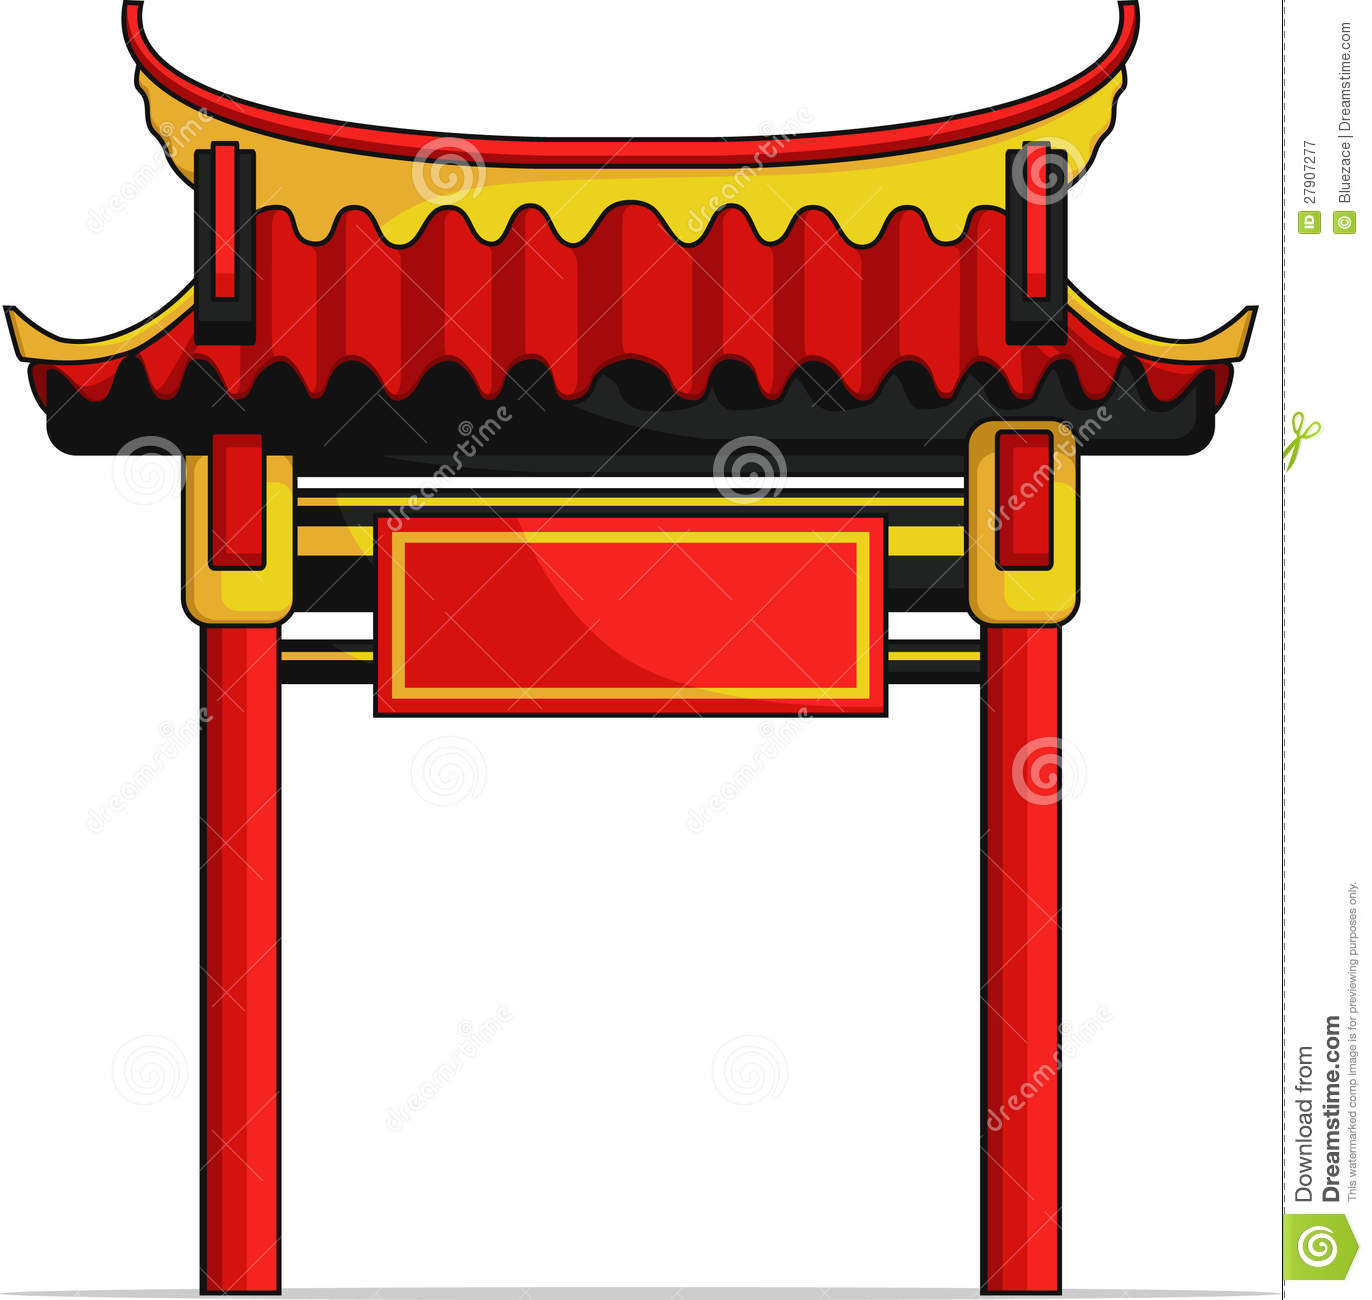 Chinese Gate Royalty Free Stock Photography Image 27907277